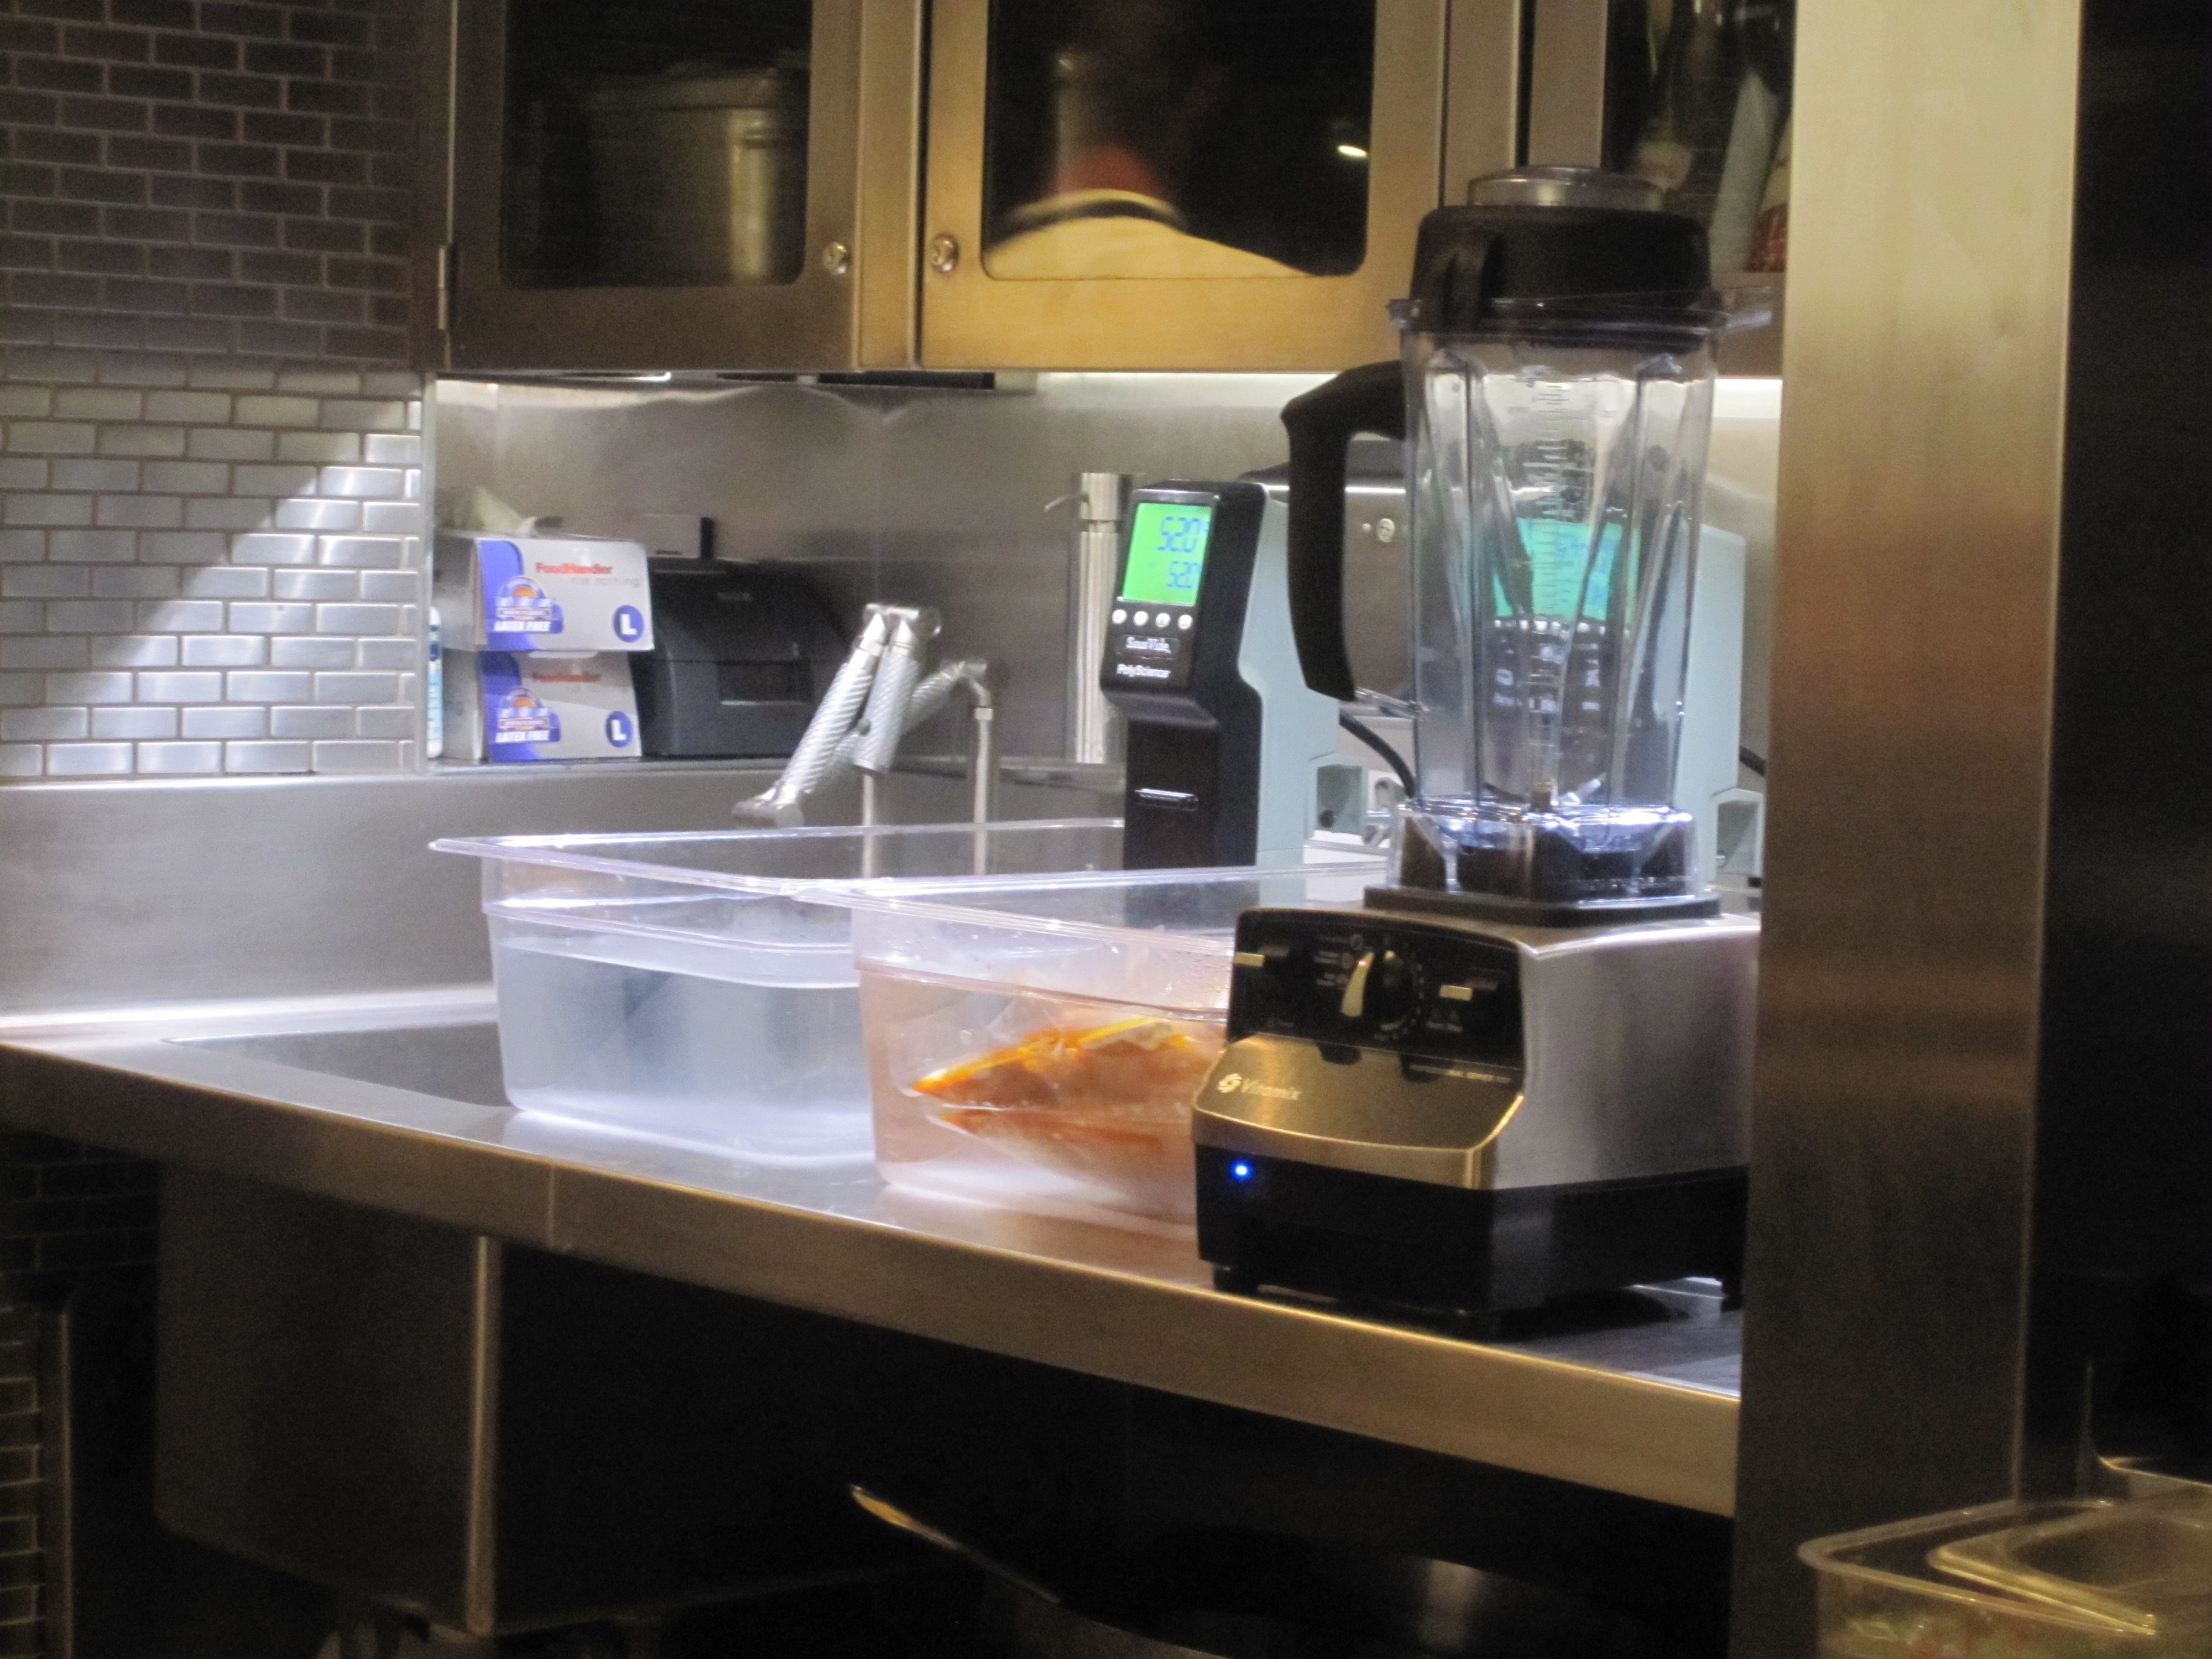 The sous vide machine cooks vacuum-packed ingredients in water set at a certain constant temperature.